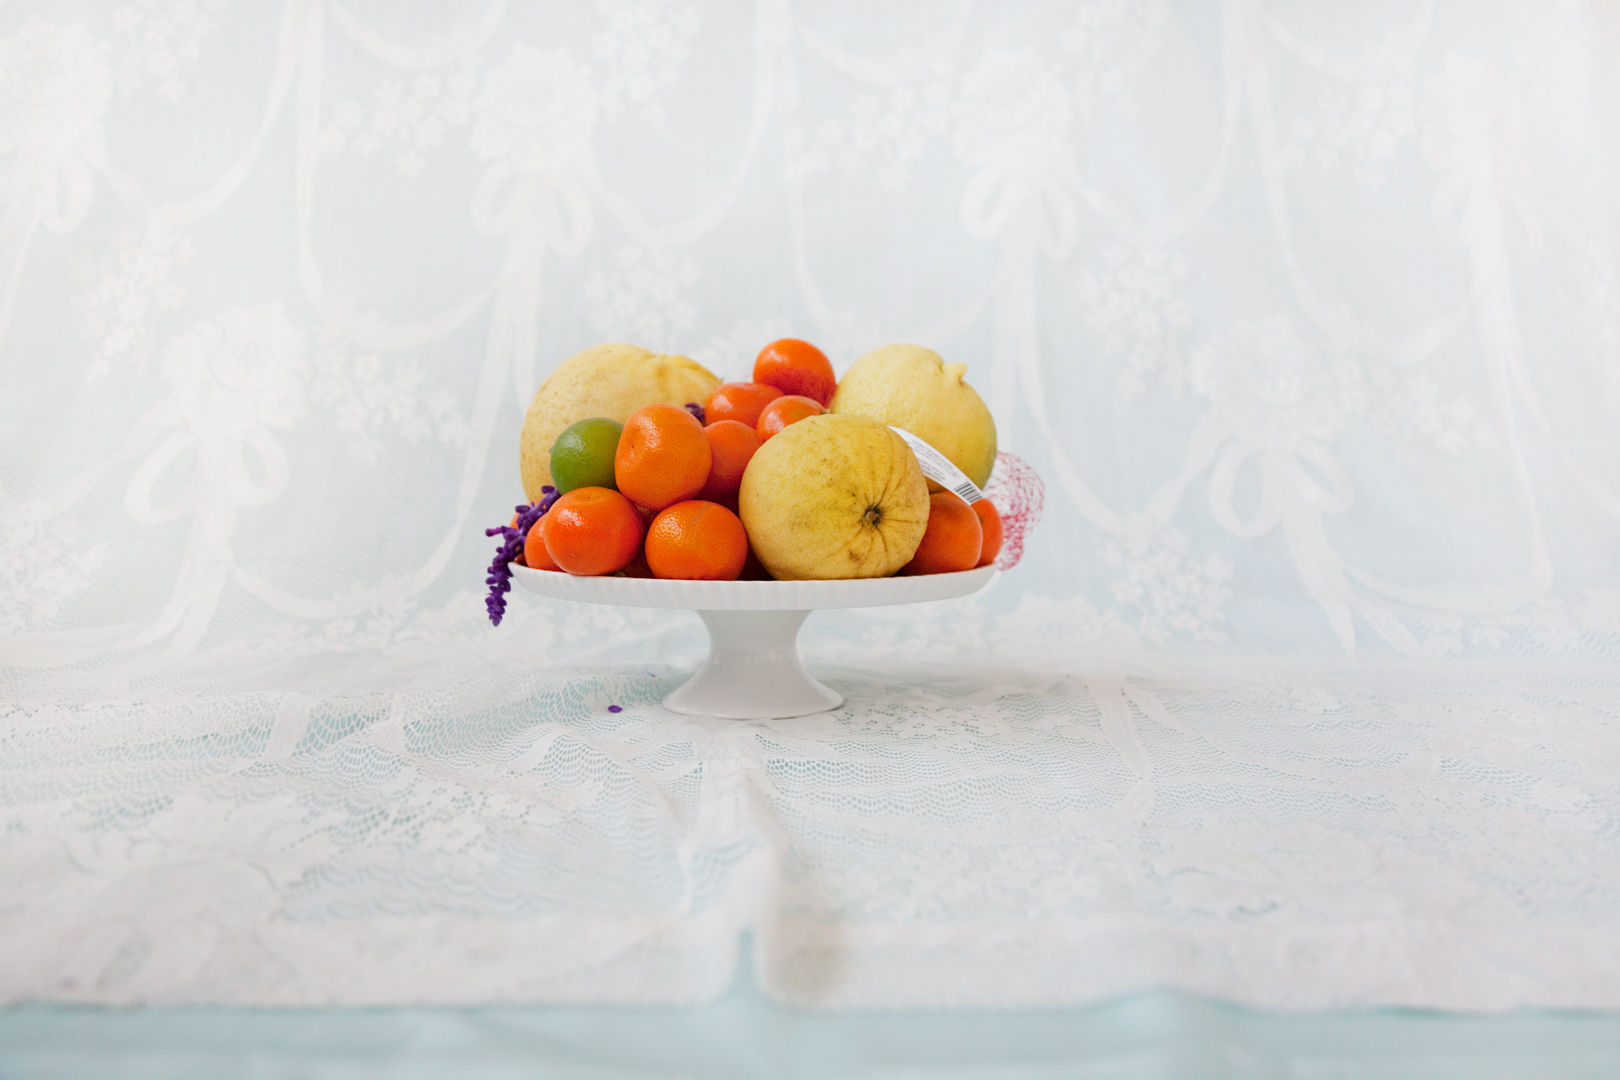 Citrus , 16 x 24 inches, archival pigment print, 2009